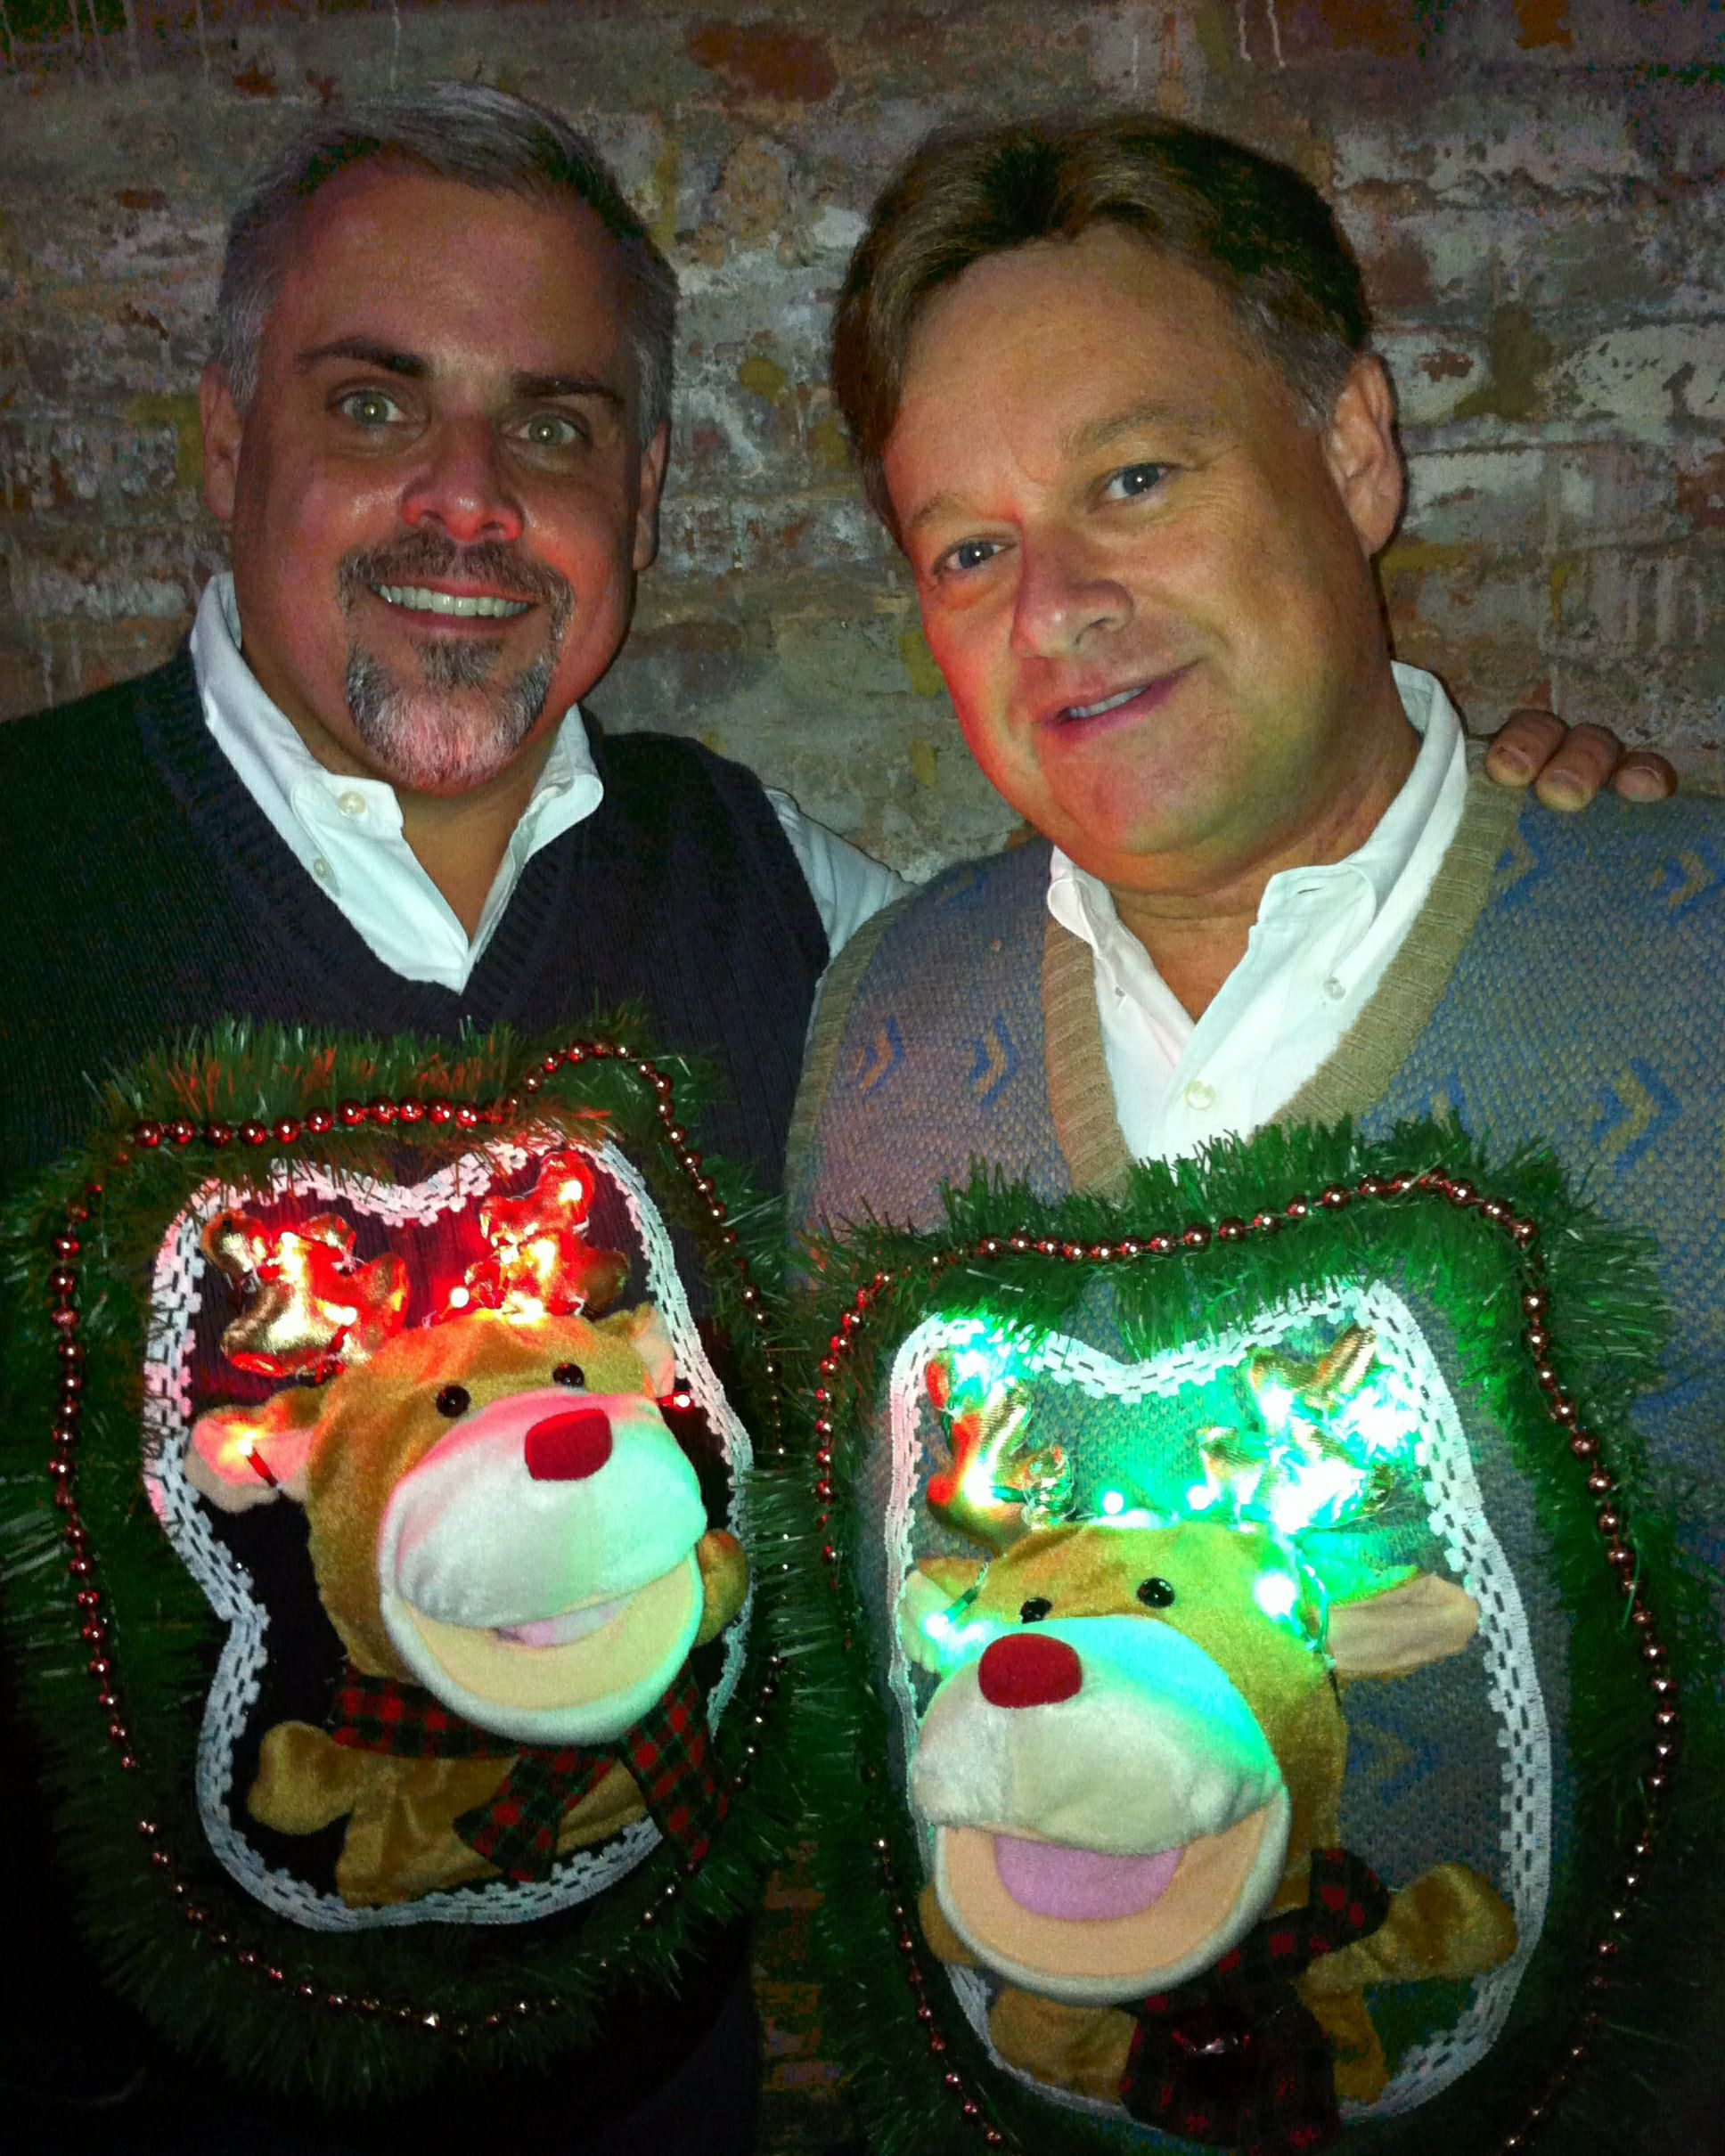 Christmas Jumper Party: The Tackier The Better: 10 Ugly/Great Christmas Sweaters